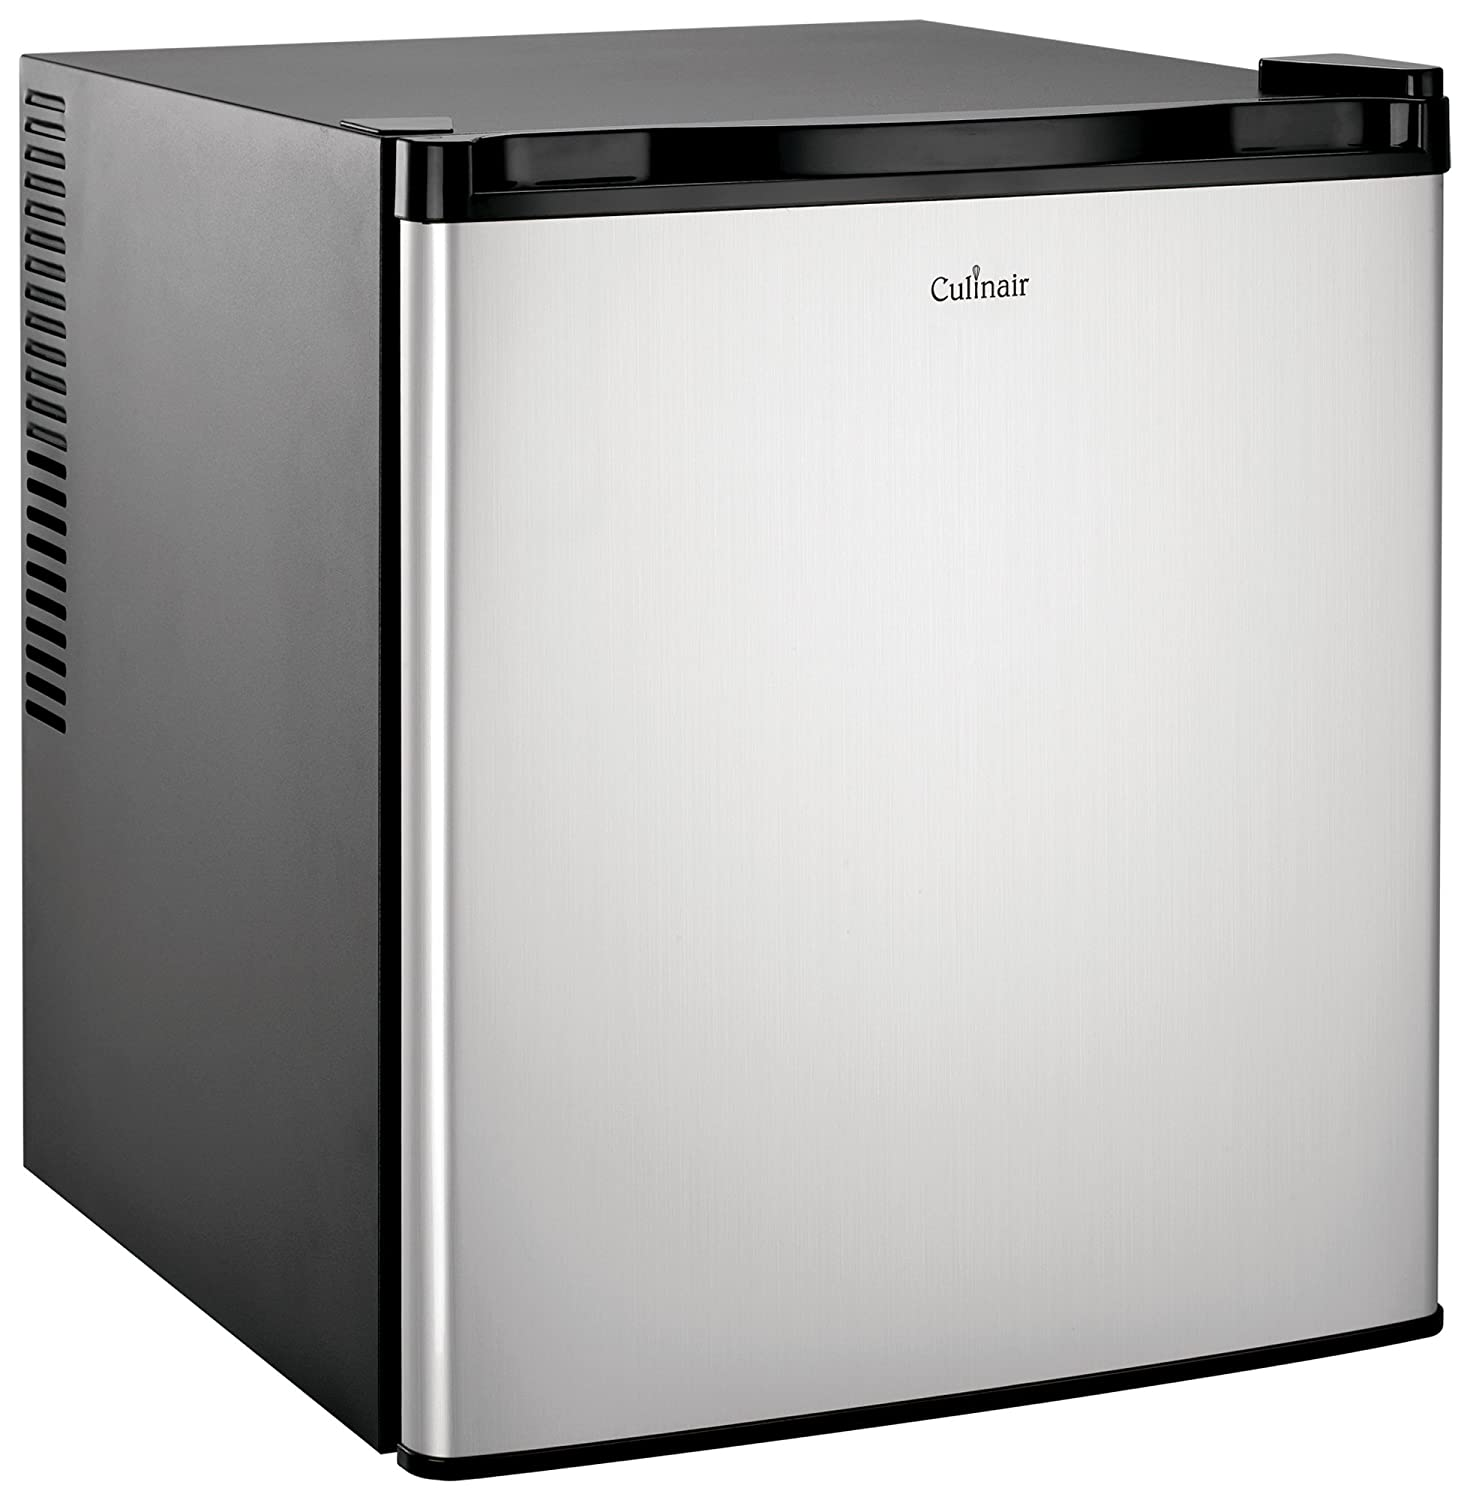 Amazon com  Culinair Af100s 1 7 Cubic Foot Compact Refrigerator  Silver and  Black  Mini Fridge  Kitchen   Dining. Amazon com  Culinair Af100s 1 7 Cubic Foot Compact Refrigerator